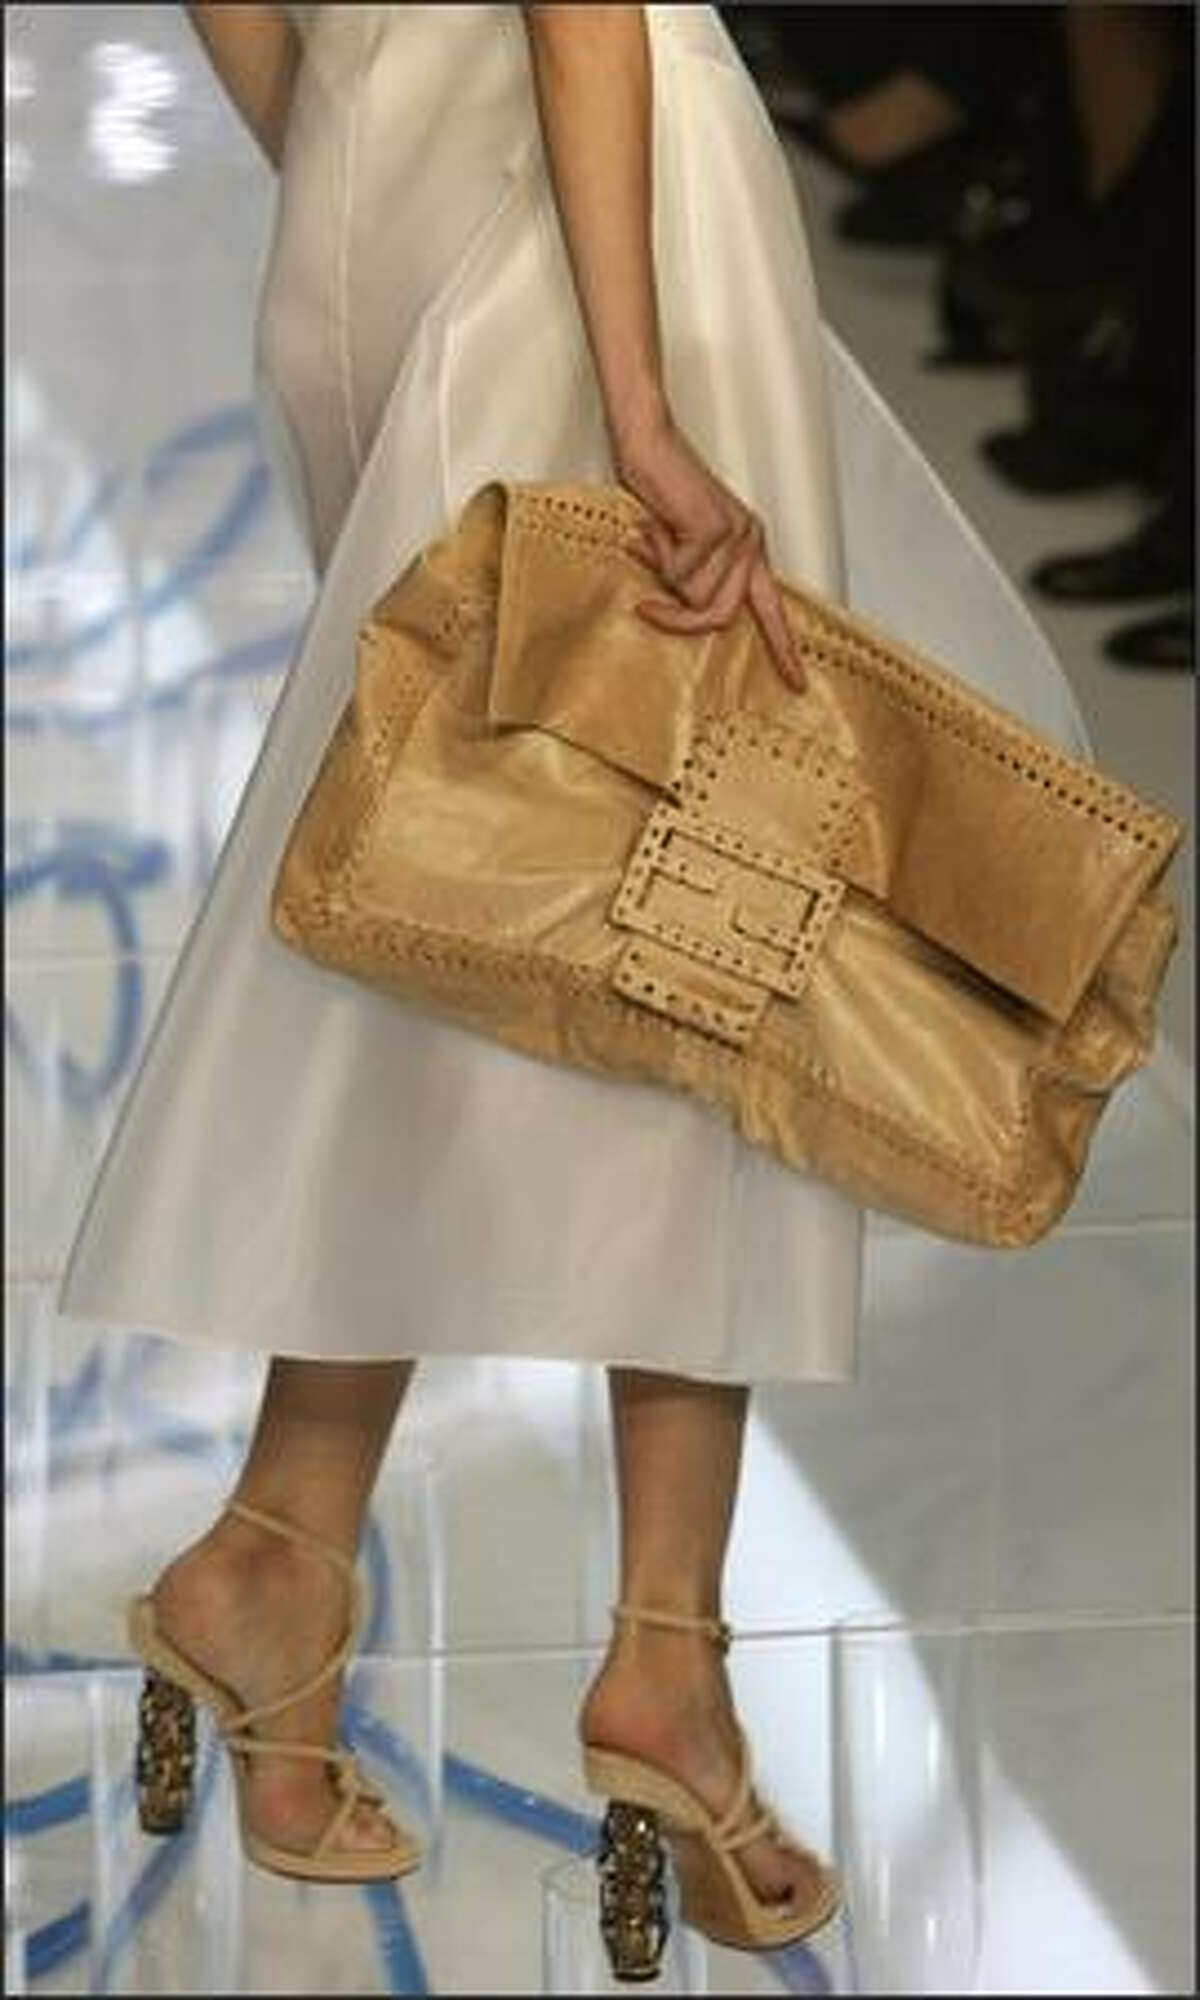 A model presents a creation by Fendi during the Spring/Summer 2008 collections of the Milan ready-to-wear fashion shows.